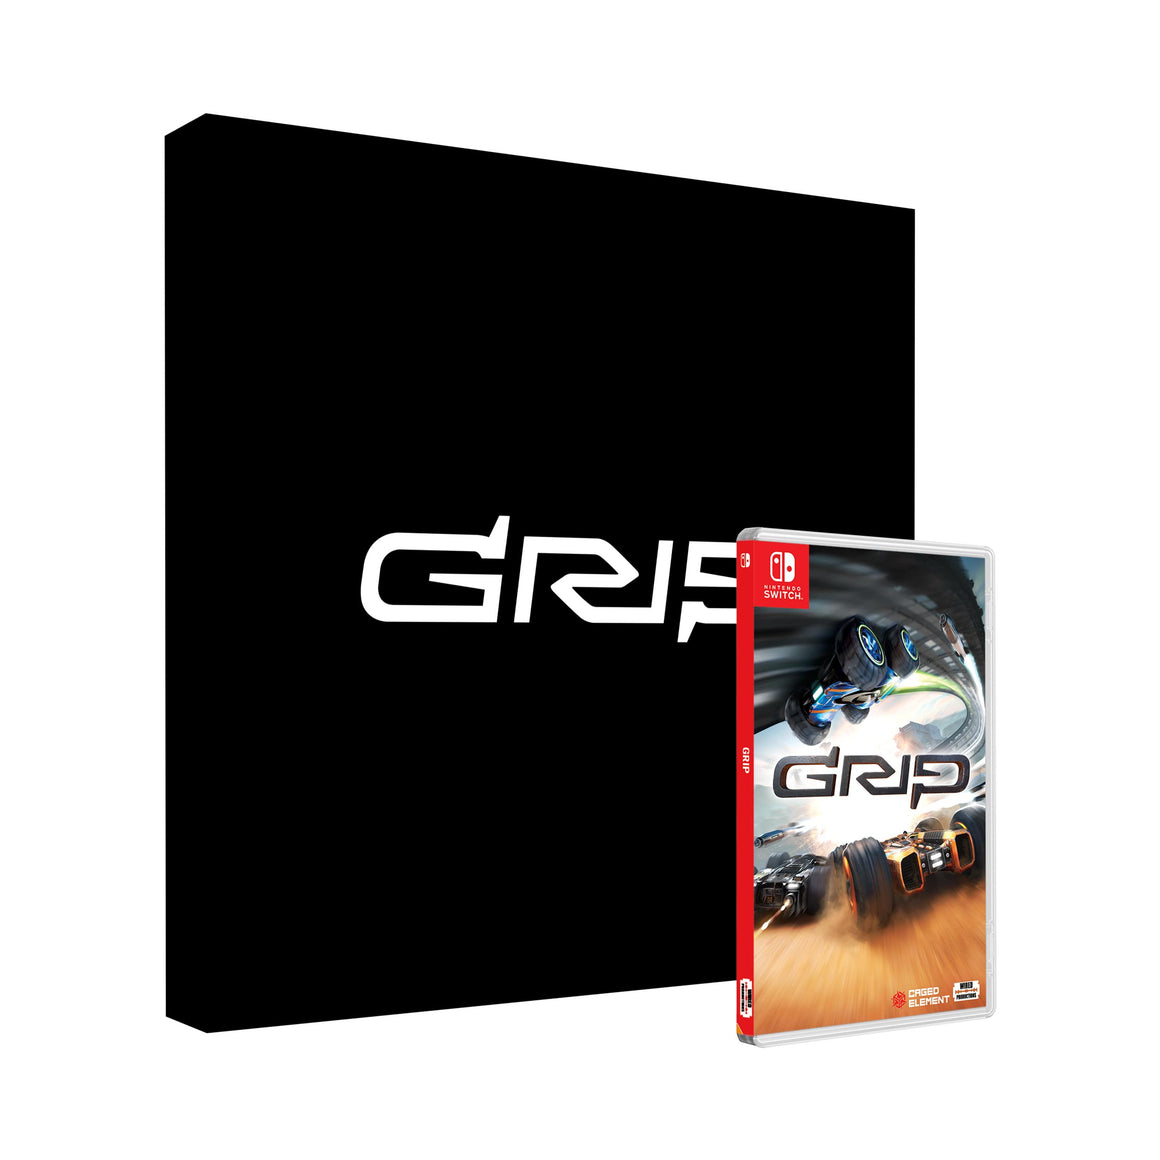 GRIP: Combat Racing Collector's Edition [Nintendo Switch] - Wired Productions